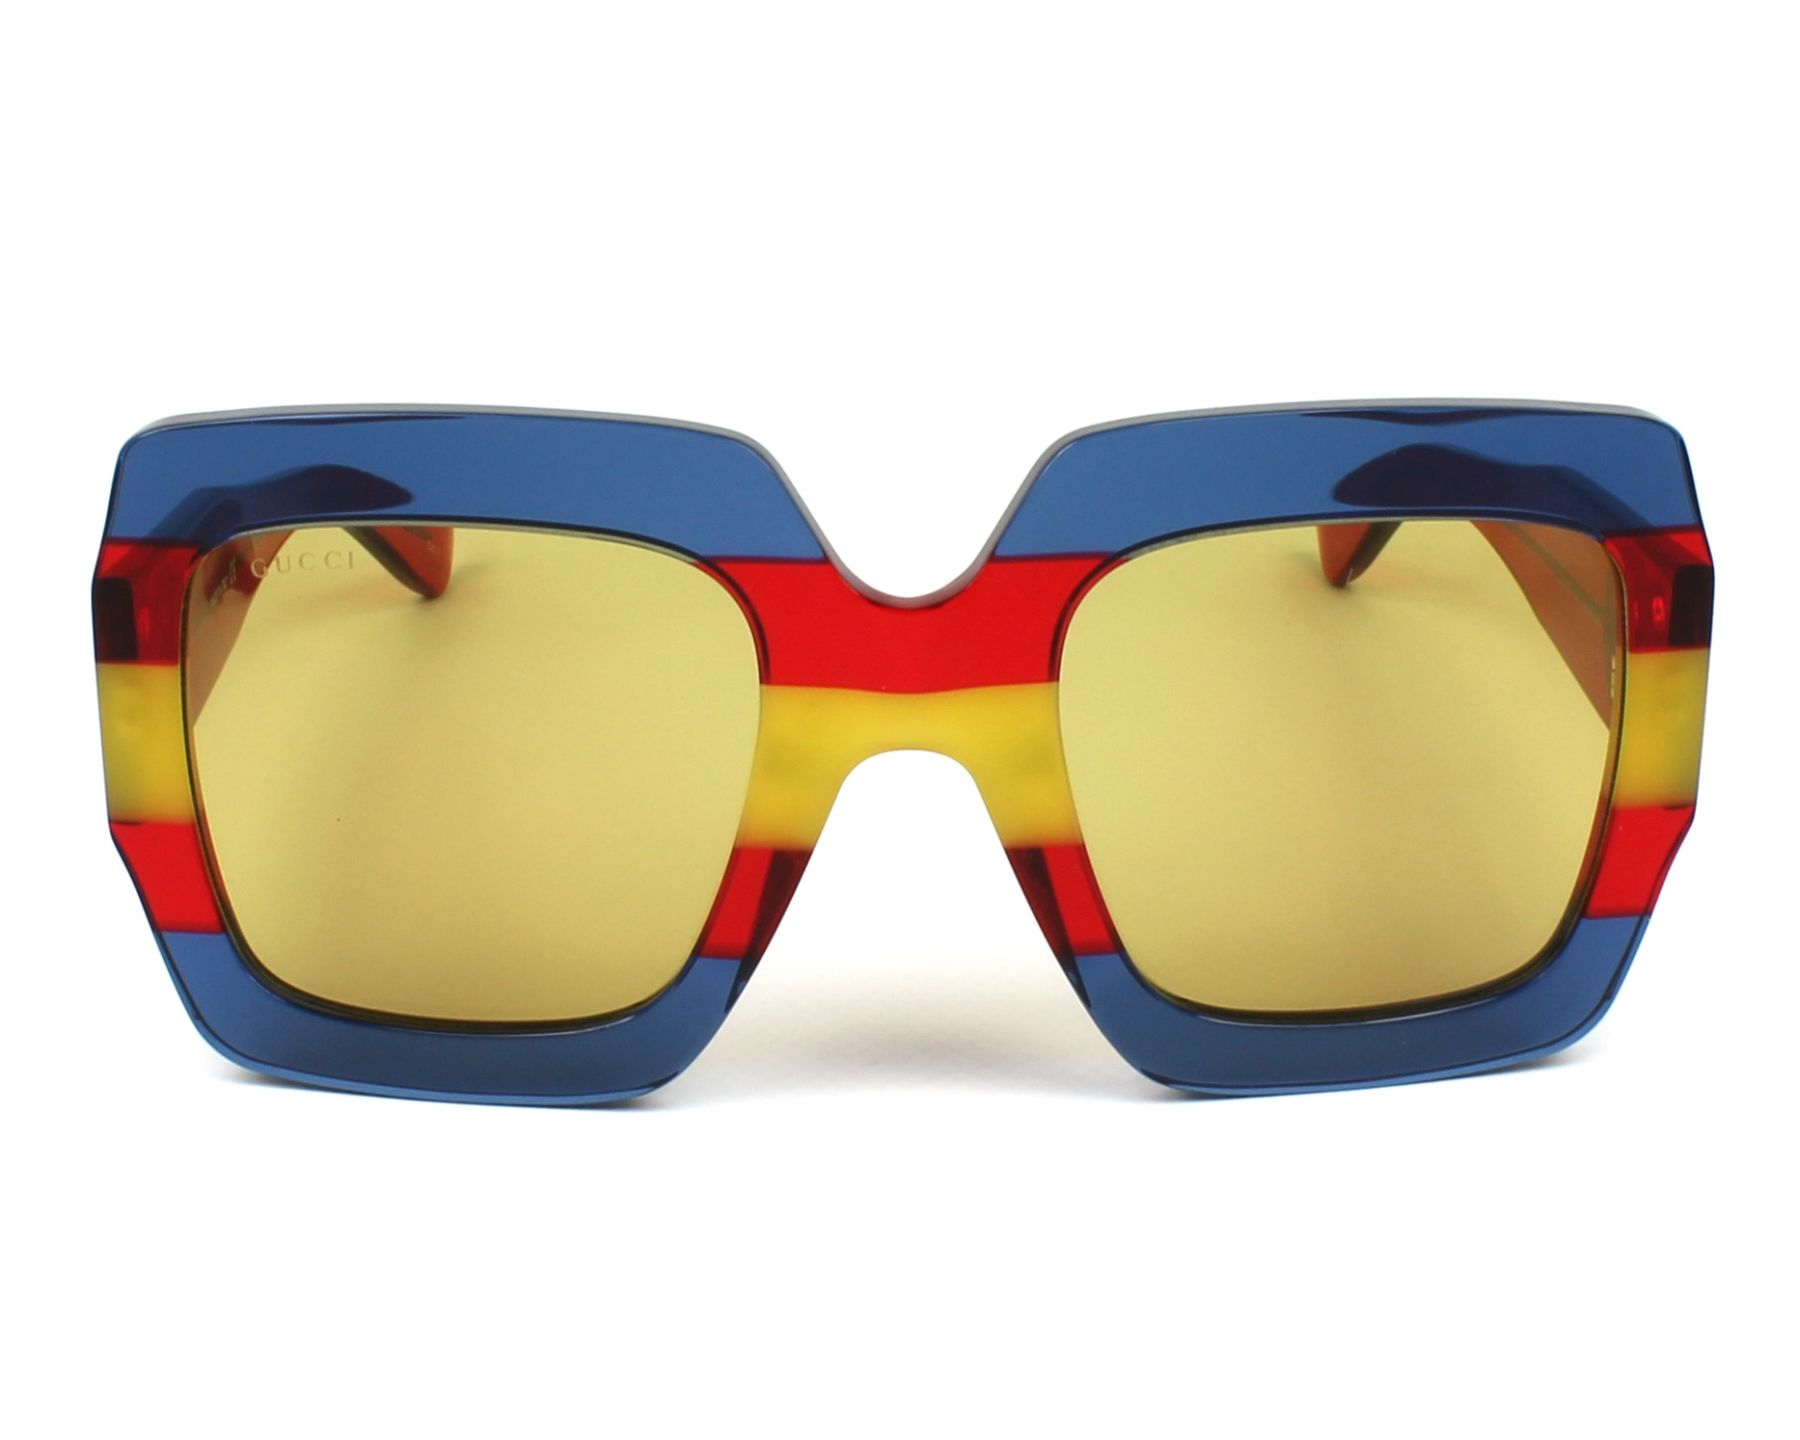 25b09bf5aea Sunglasses Gucci GG-0178-S 002 54-25 Blue Red front view